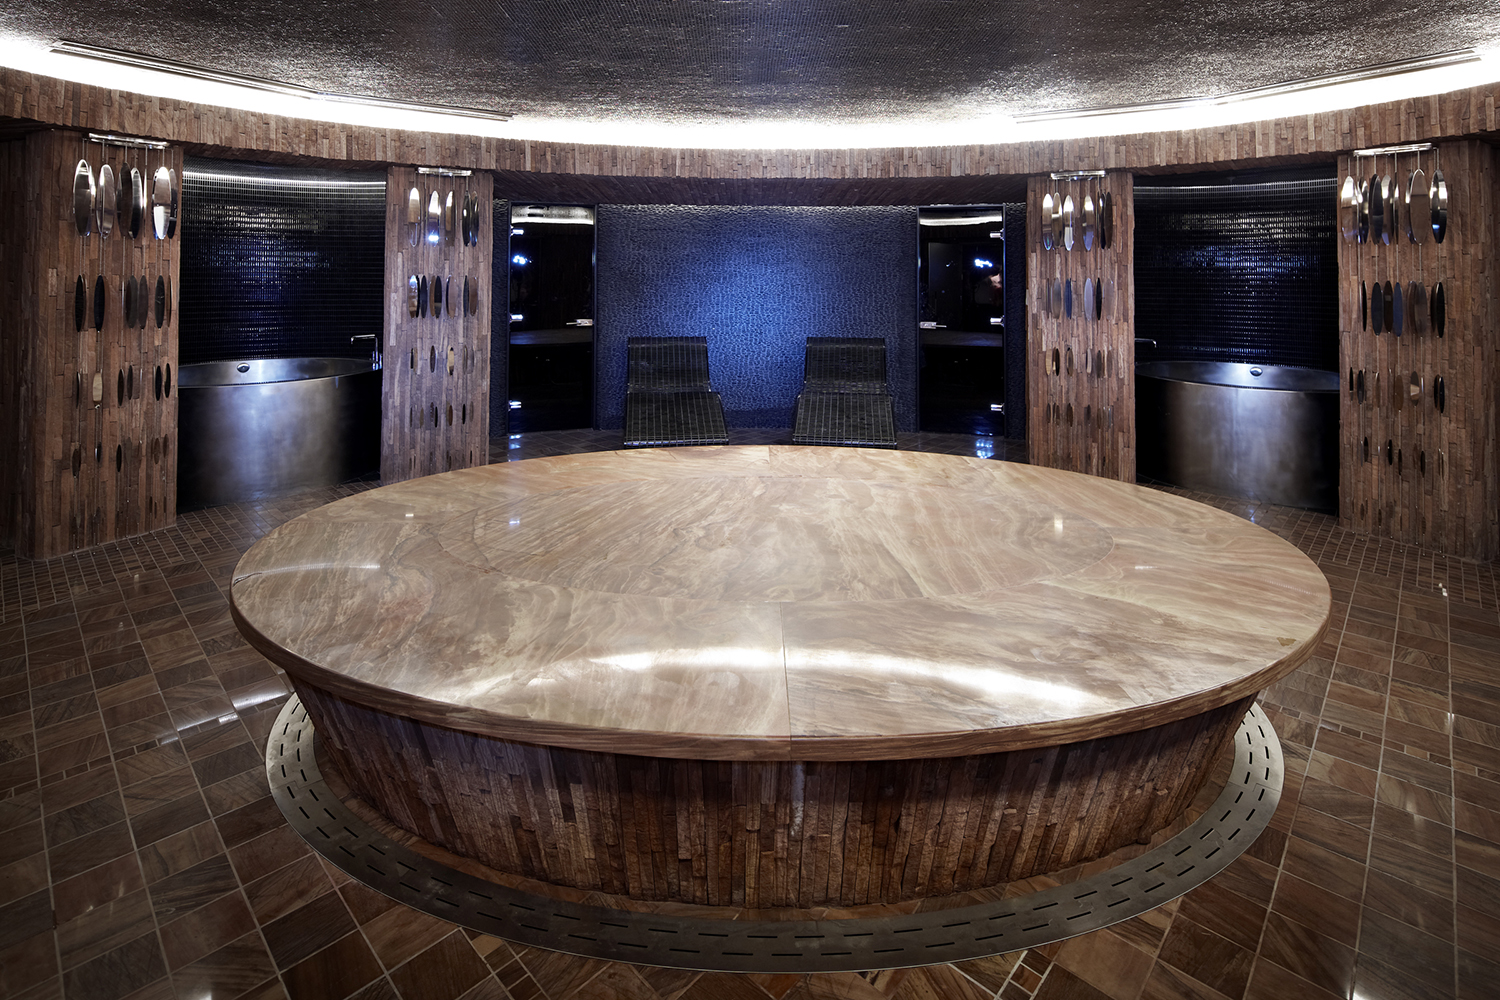 Guests of Sahra Spa can relax on the heated giant stone slab in the Hammam room.